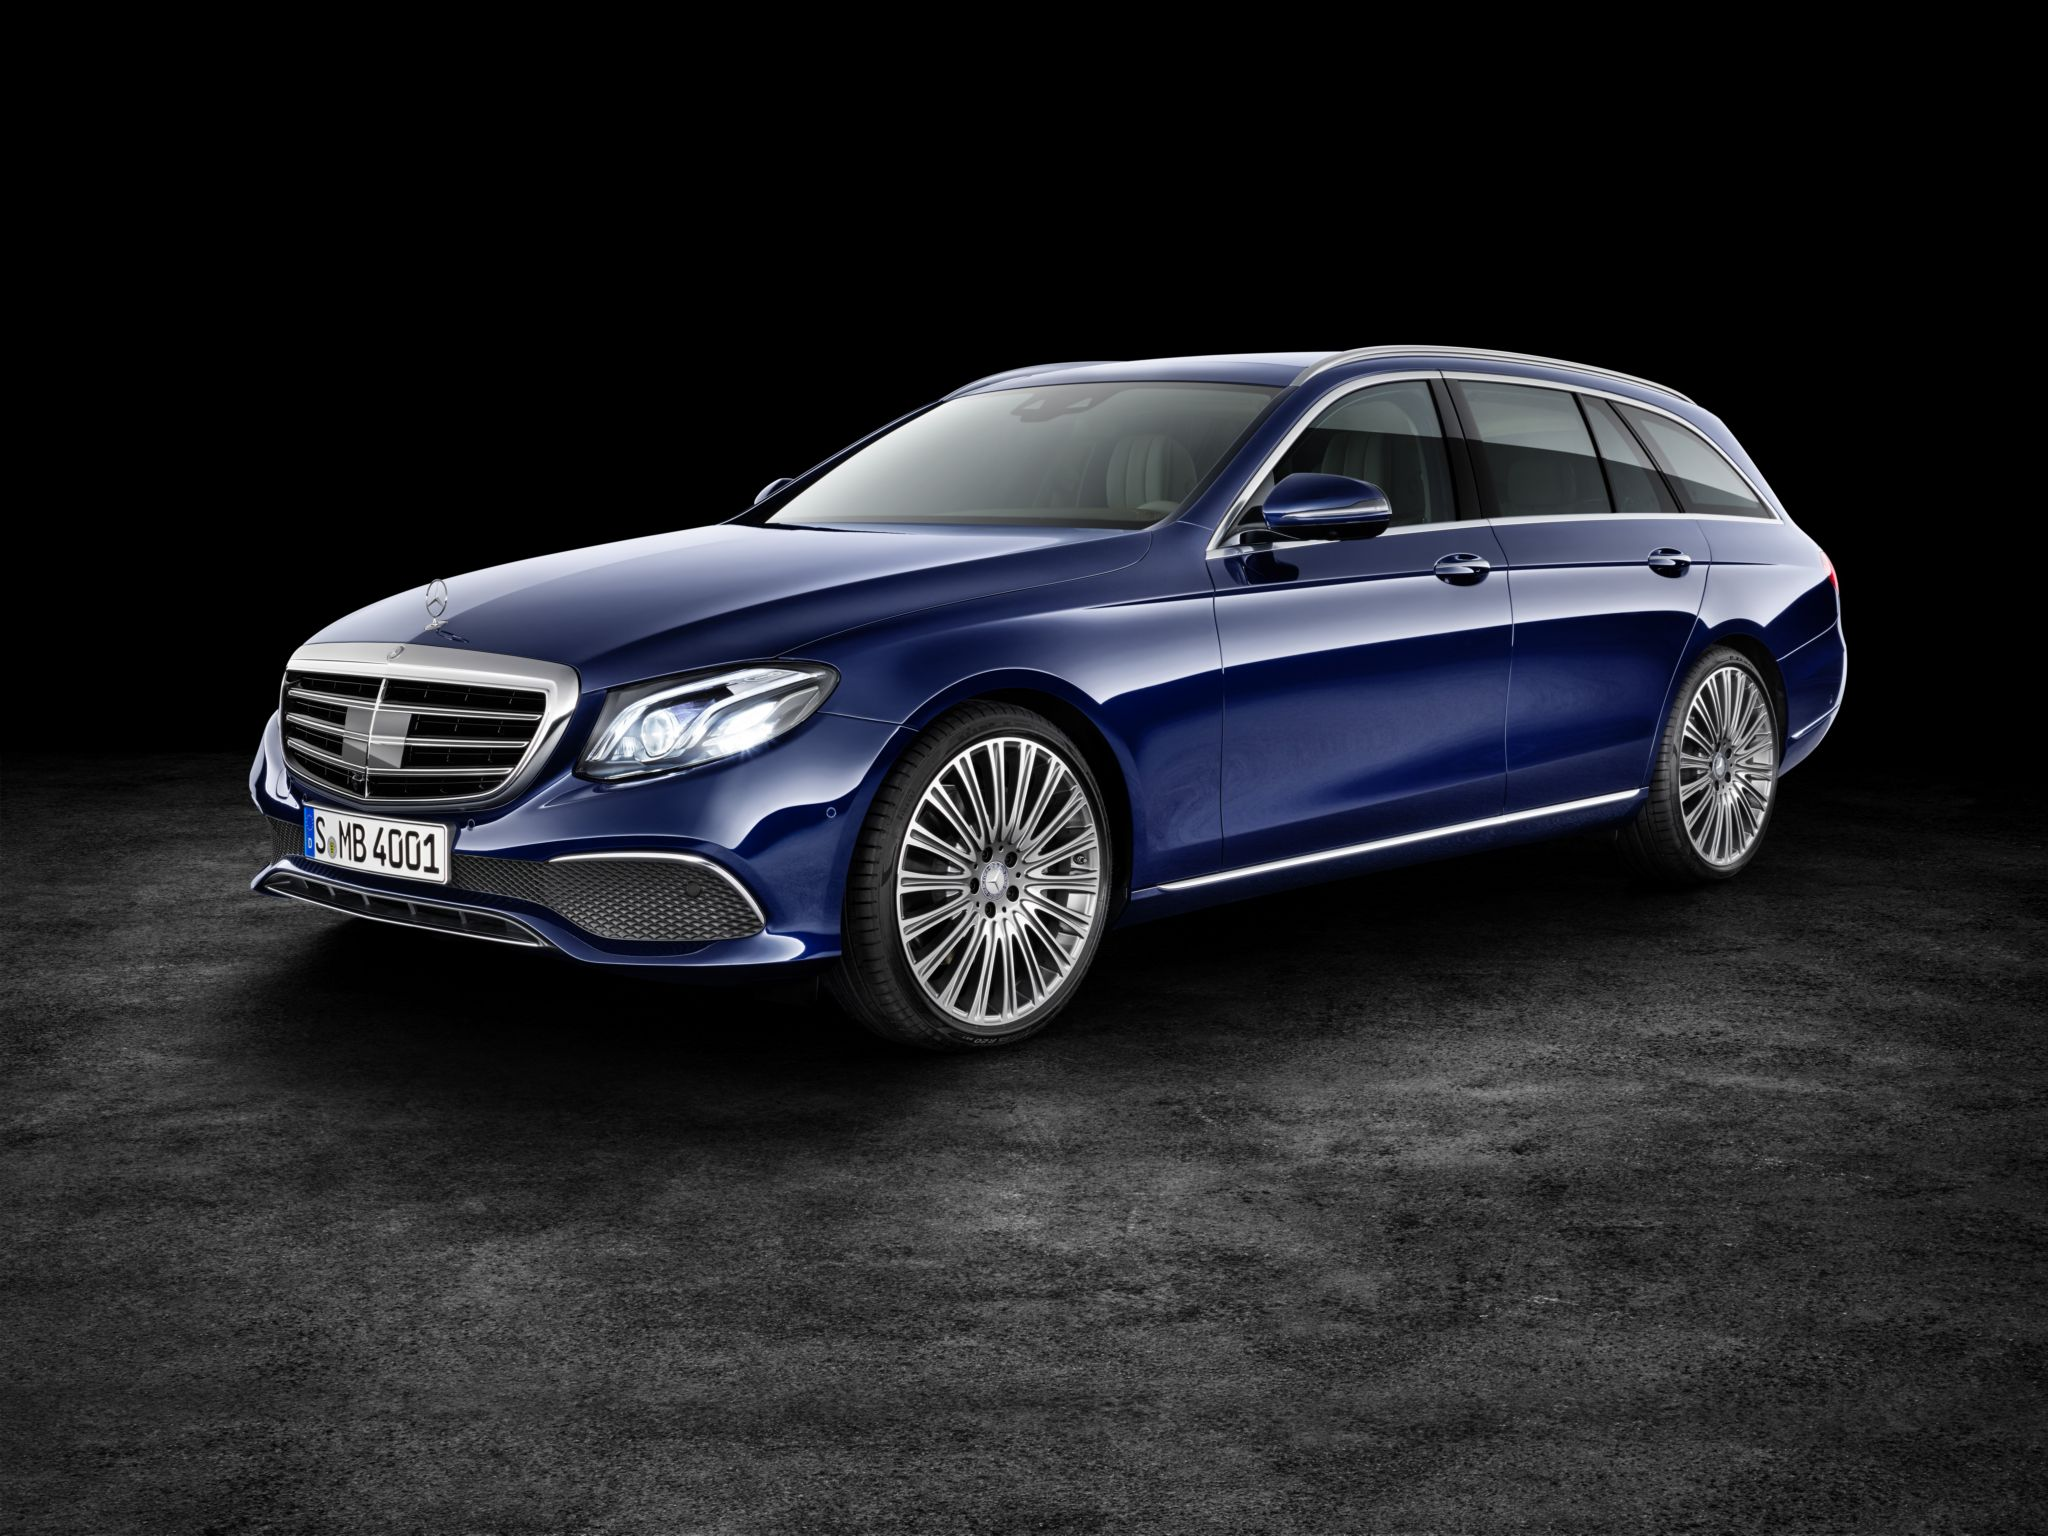 2017 Mercedes-Benz E-Class Wagon Is Both Spacious and Luxurious - autoevolution